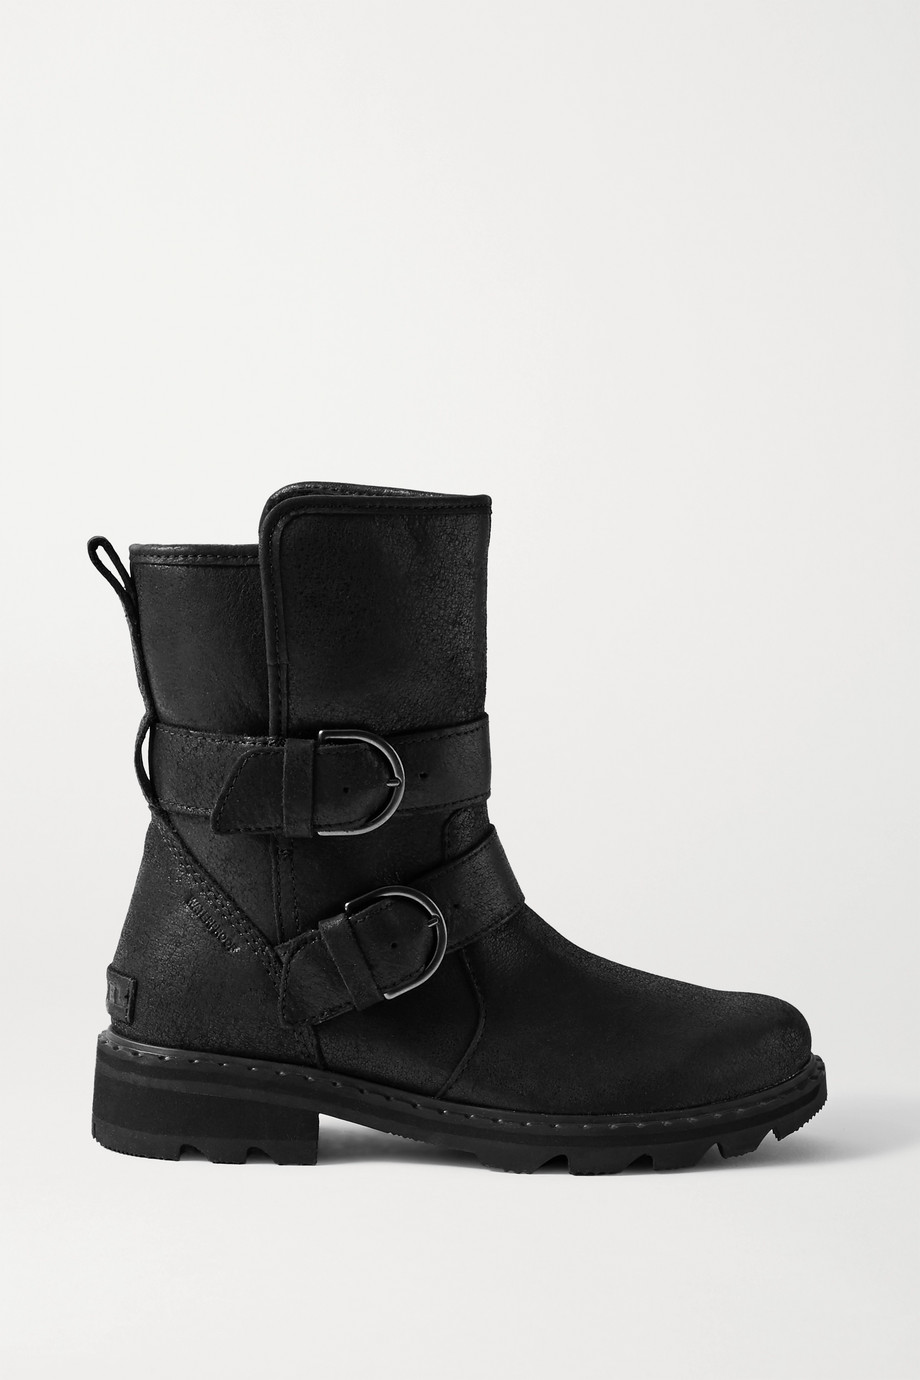 SOREL Lennox Moto Cozy buckled shearling-lined waterproof brushed-leather ankle boots